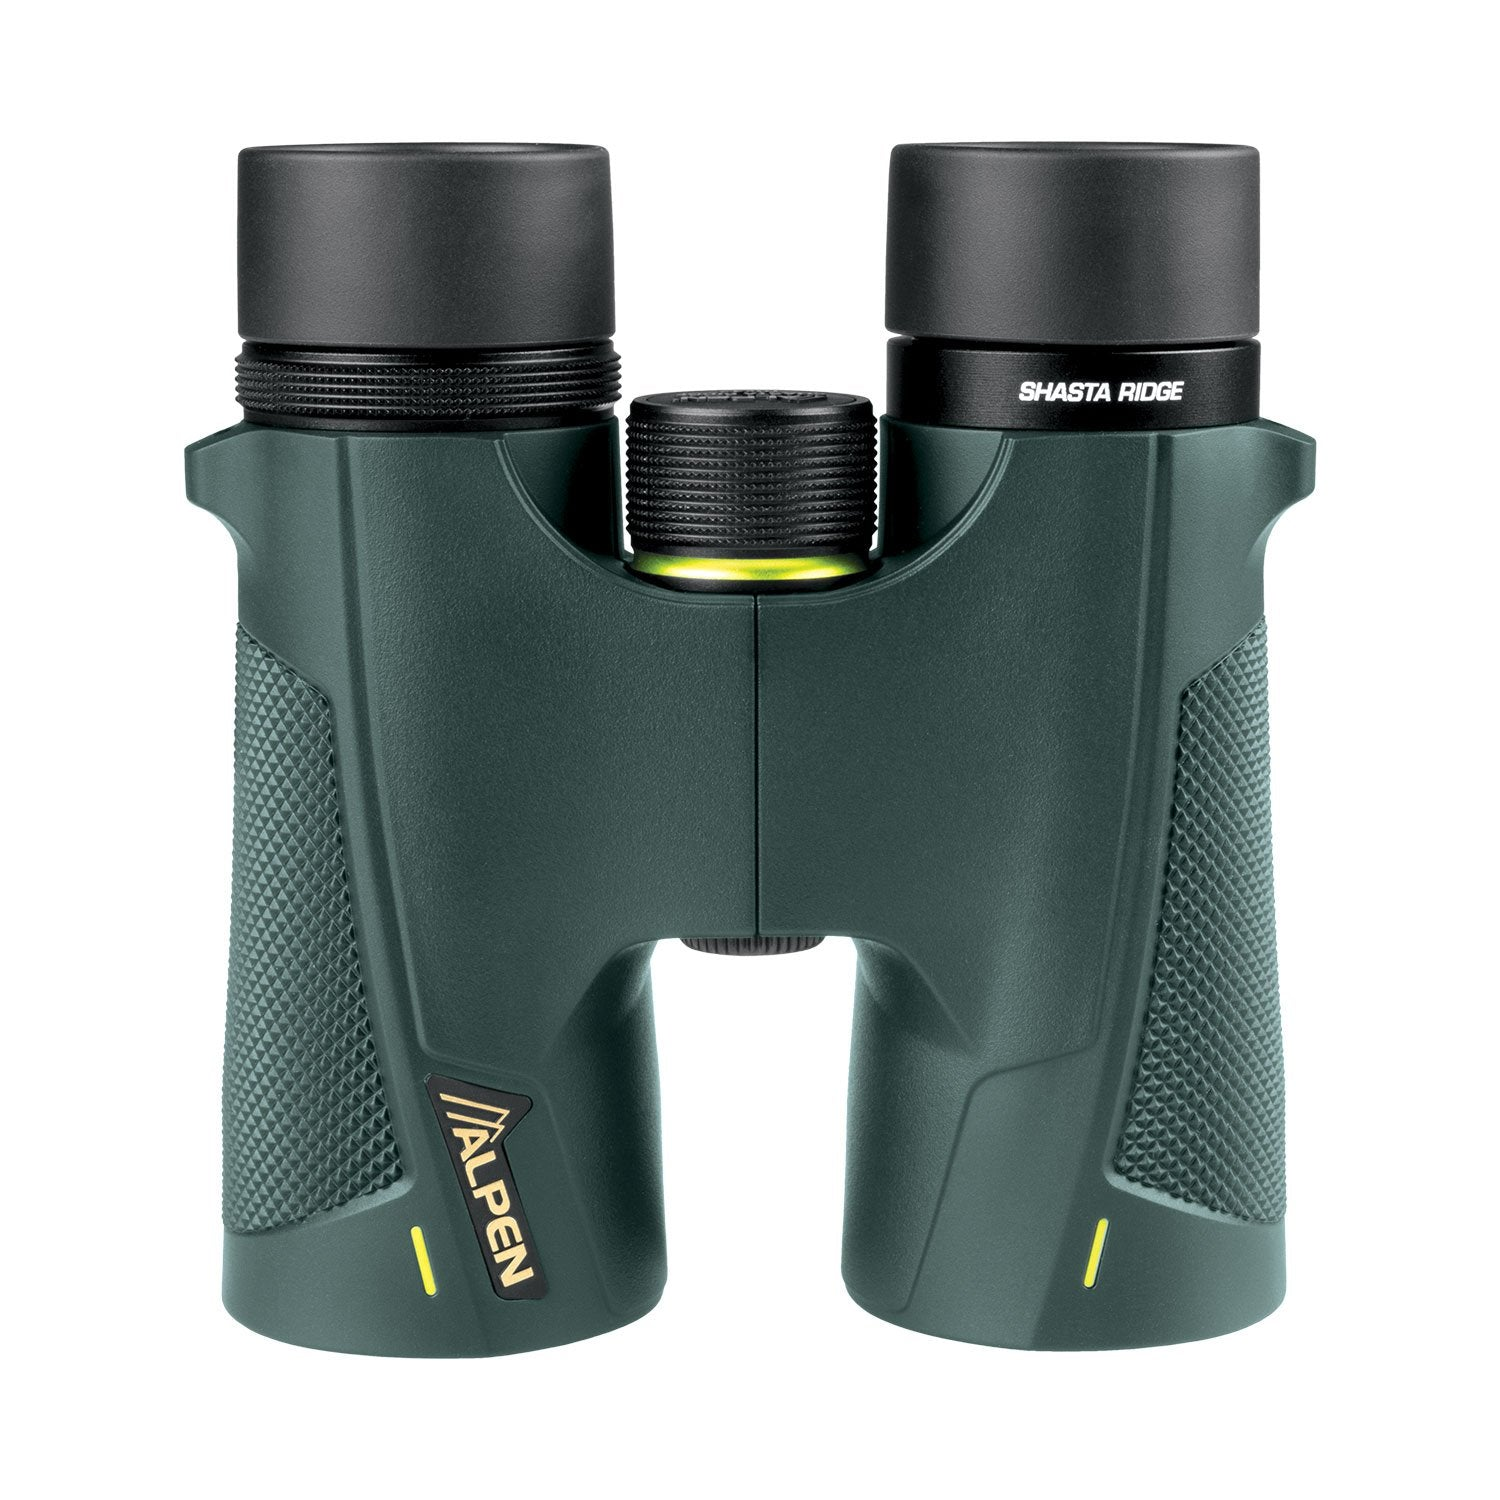 Alpen New Shasta Ridge 8x42mm Binoculars - 392SR